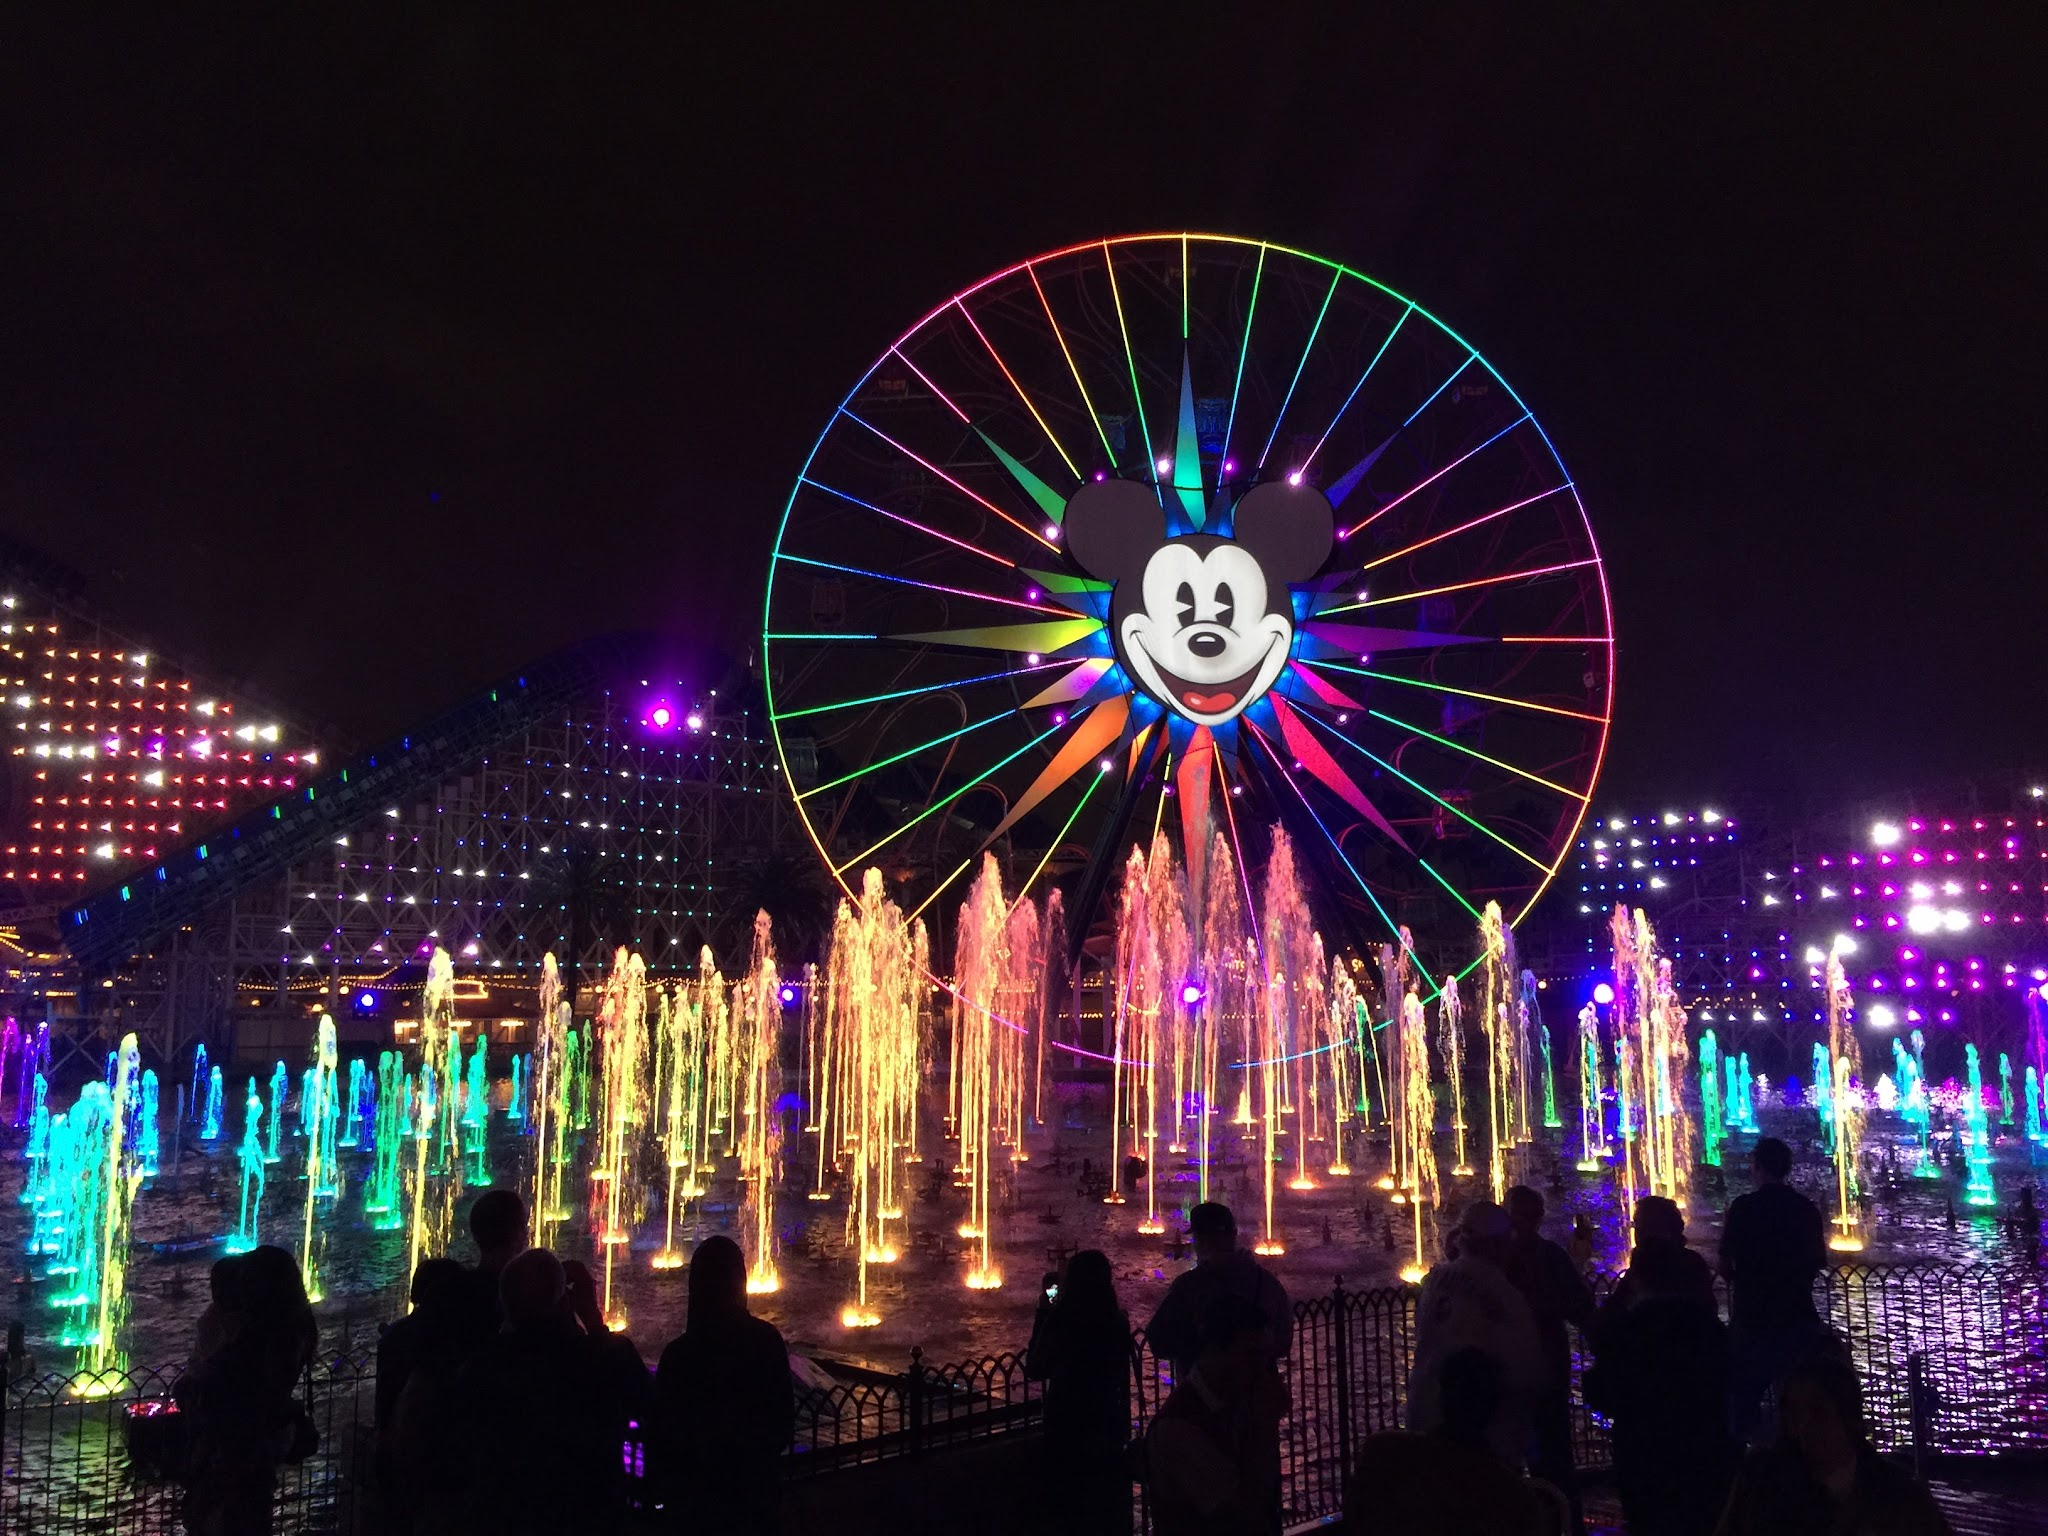 The World of Color Concept Art Designing Disney